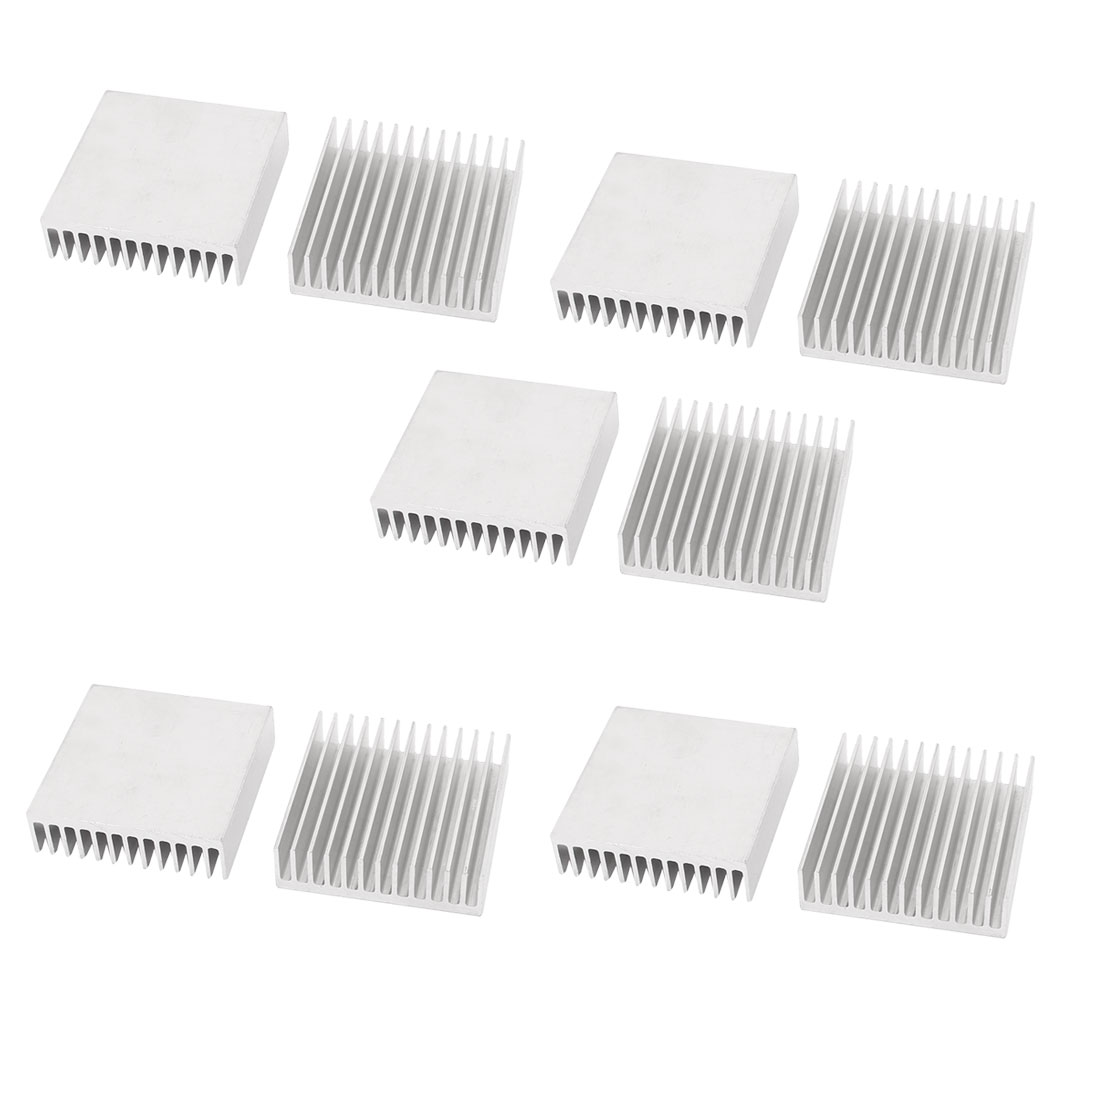 10Pcs Square Aluminium Heatsink Heat Sink 41mm x 40mm x 11mm for LED IC MCU